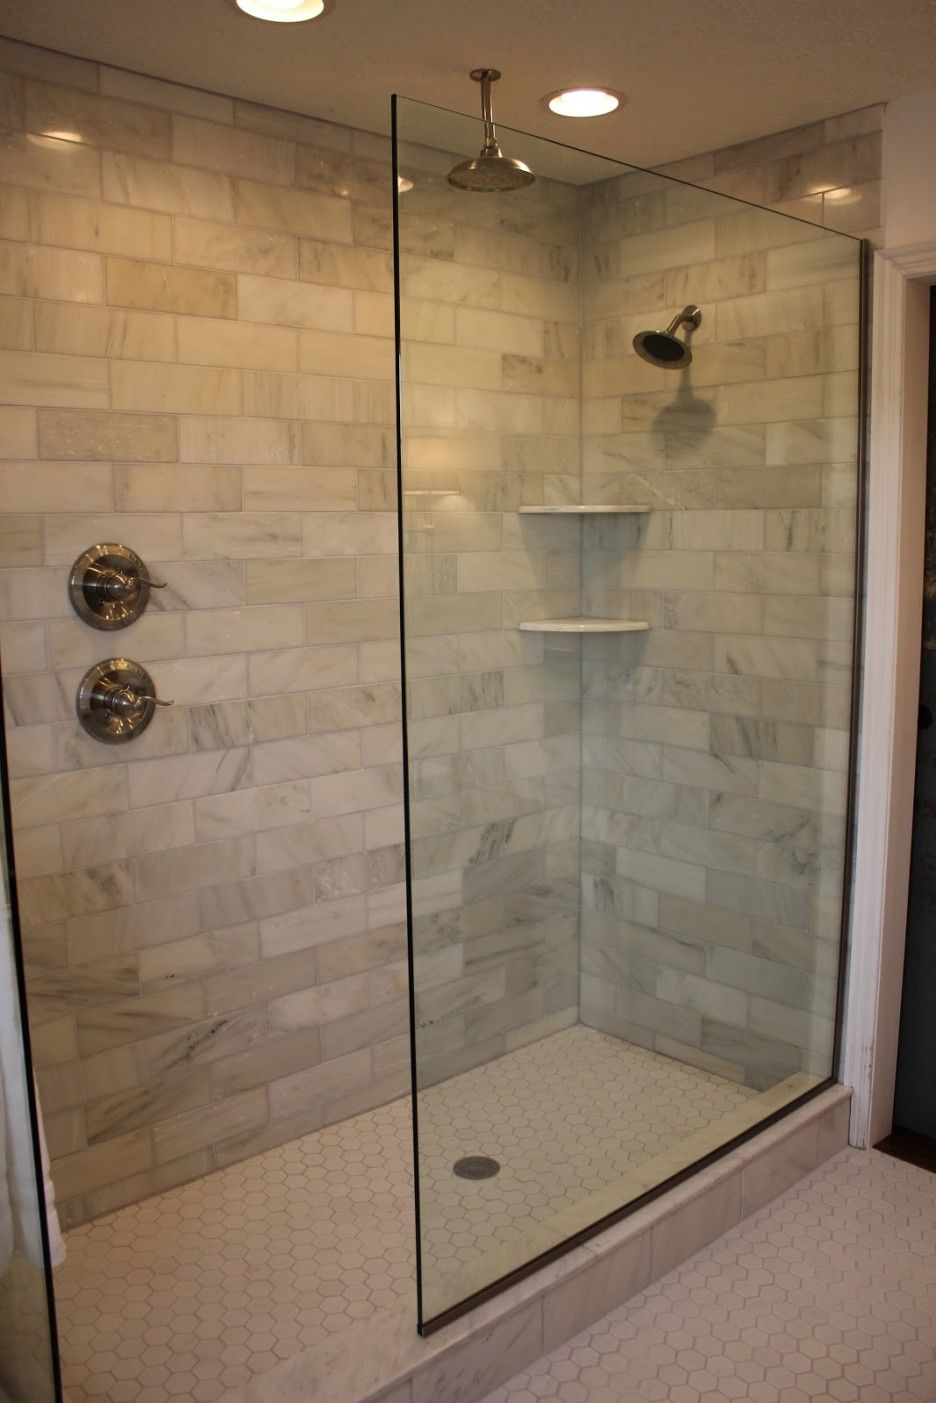 Bathroom doorless shower ideas - Doorless Walk In Shower Designs Shower Handle On Separate Wall